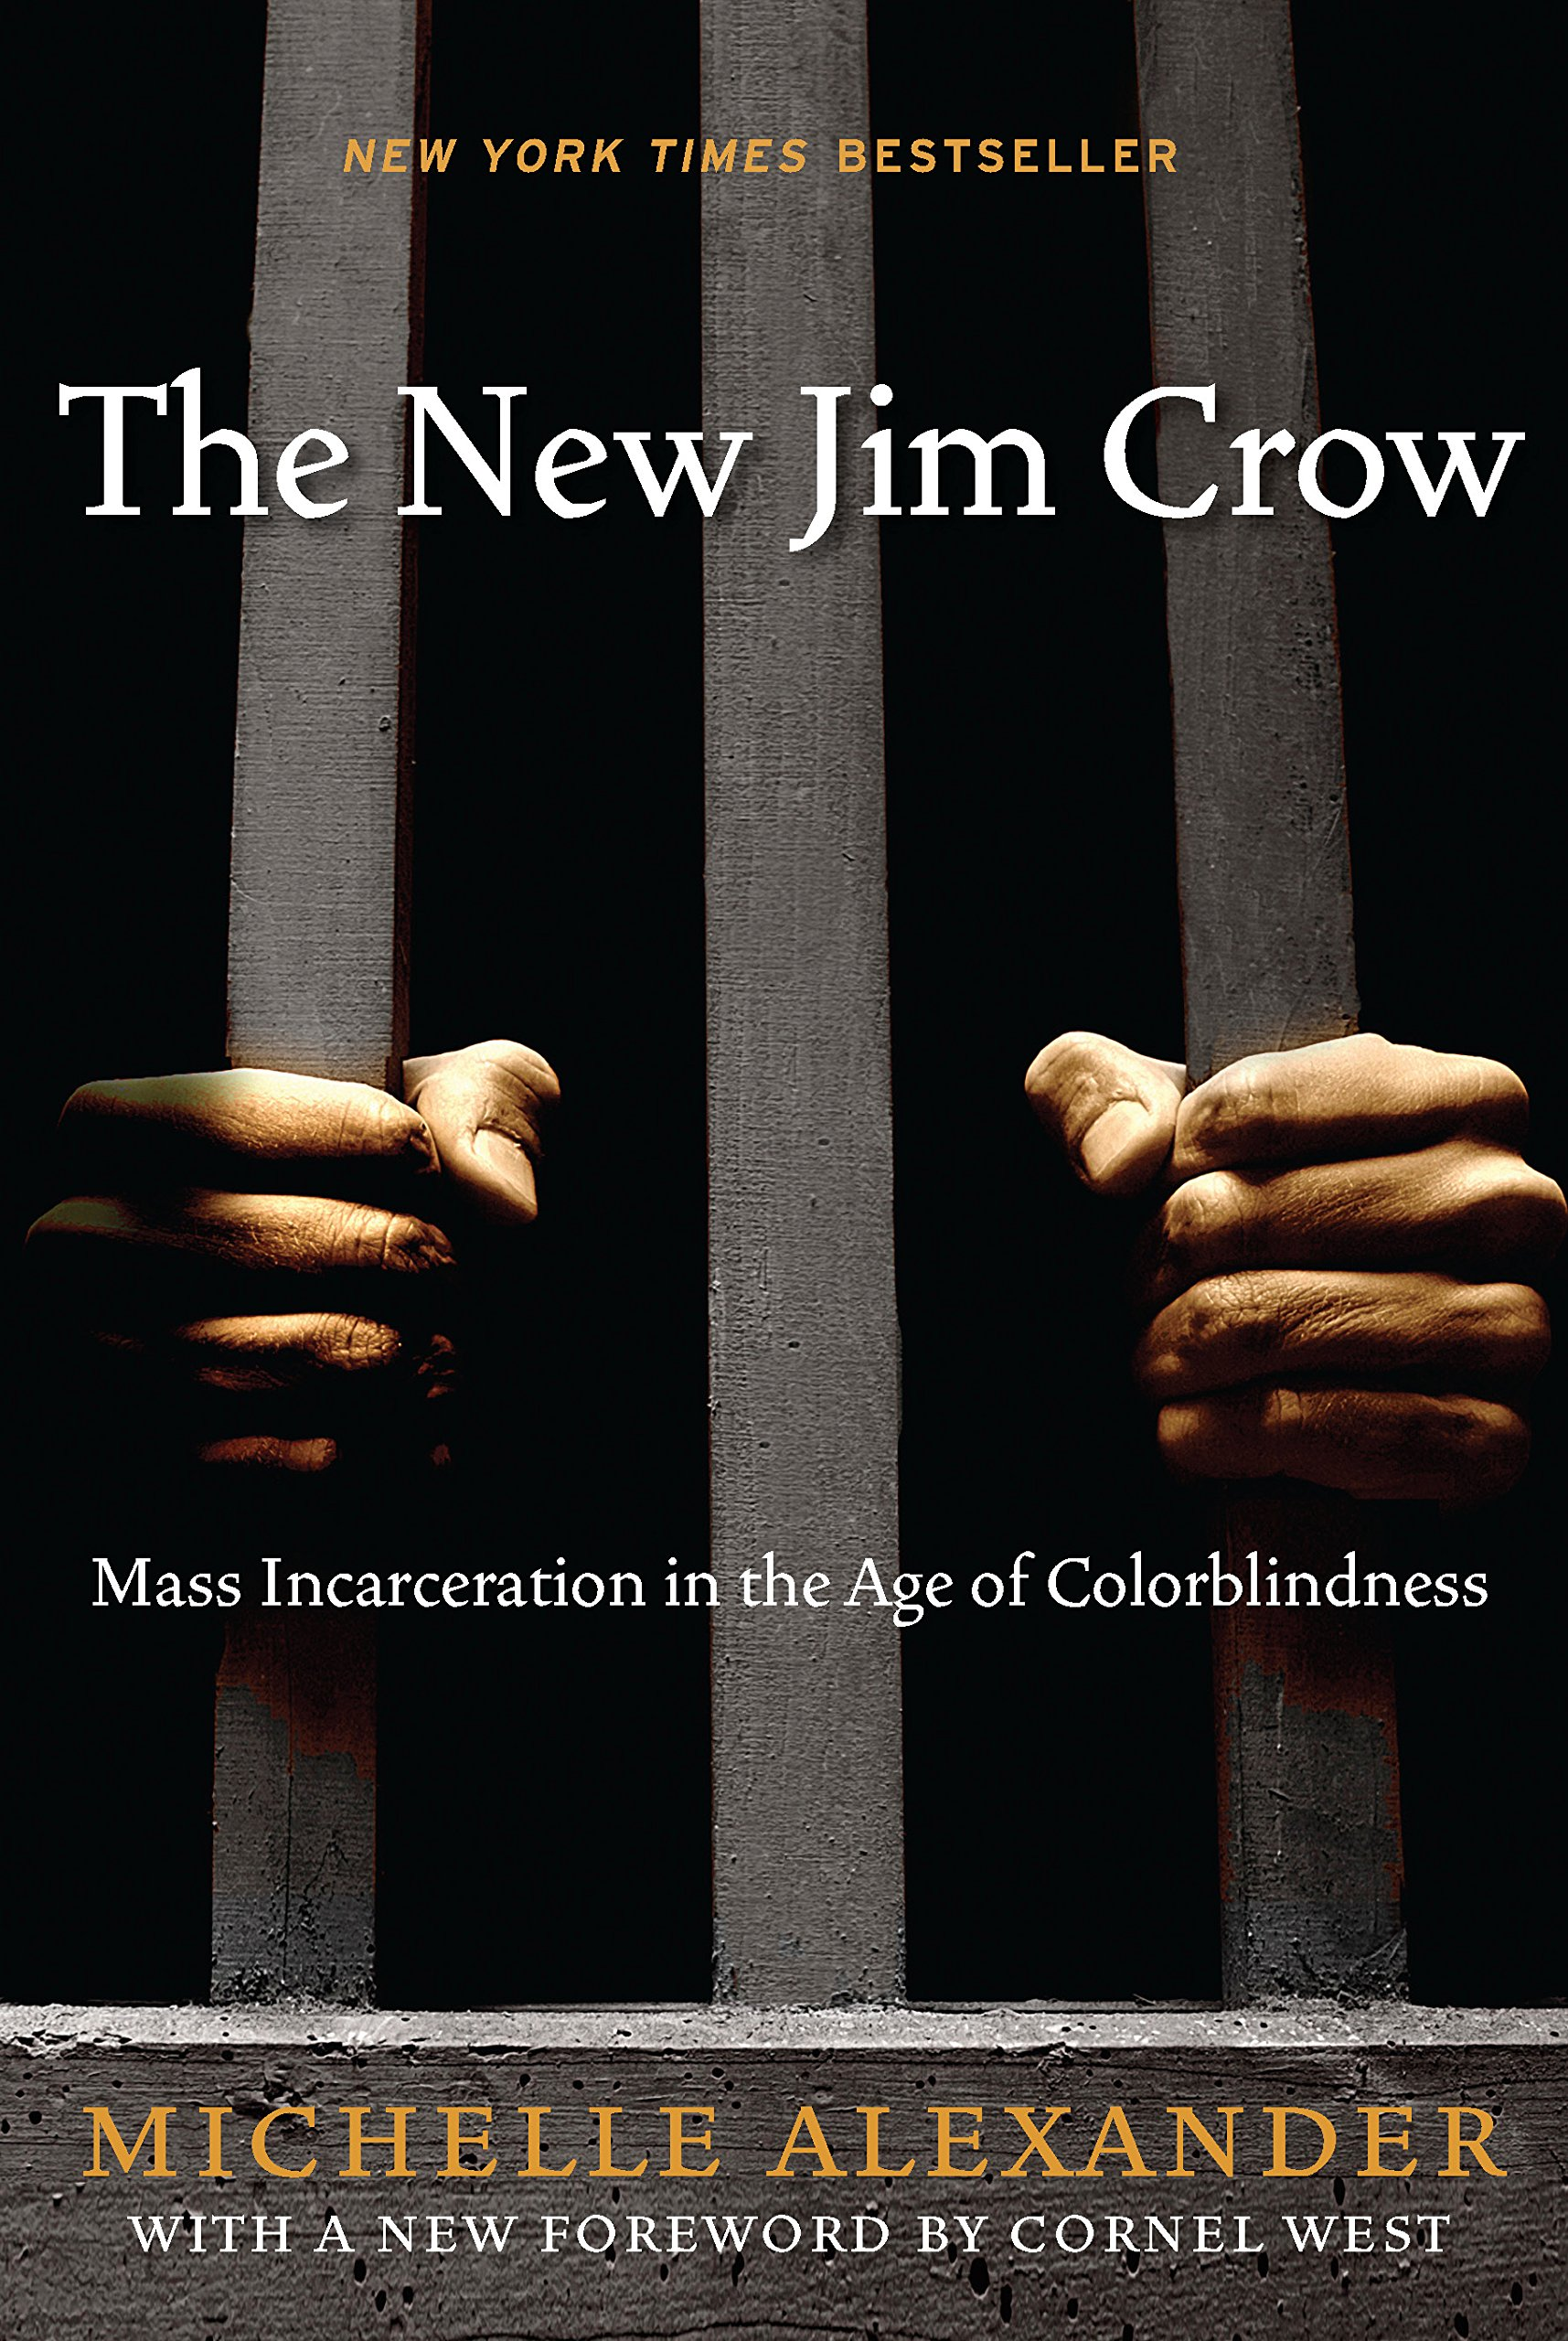 NYC Social Justice Book Club: The New Jim Crow by Michelle Alexander (POSTPONED)